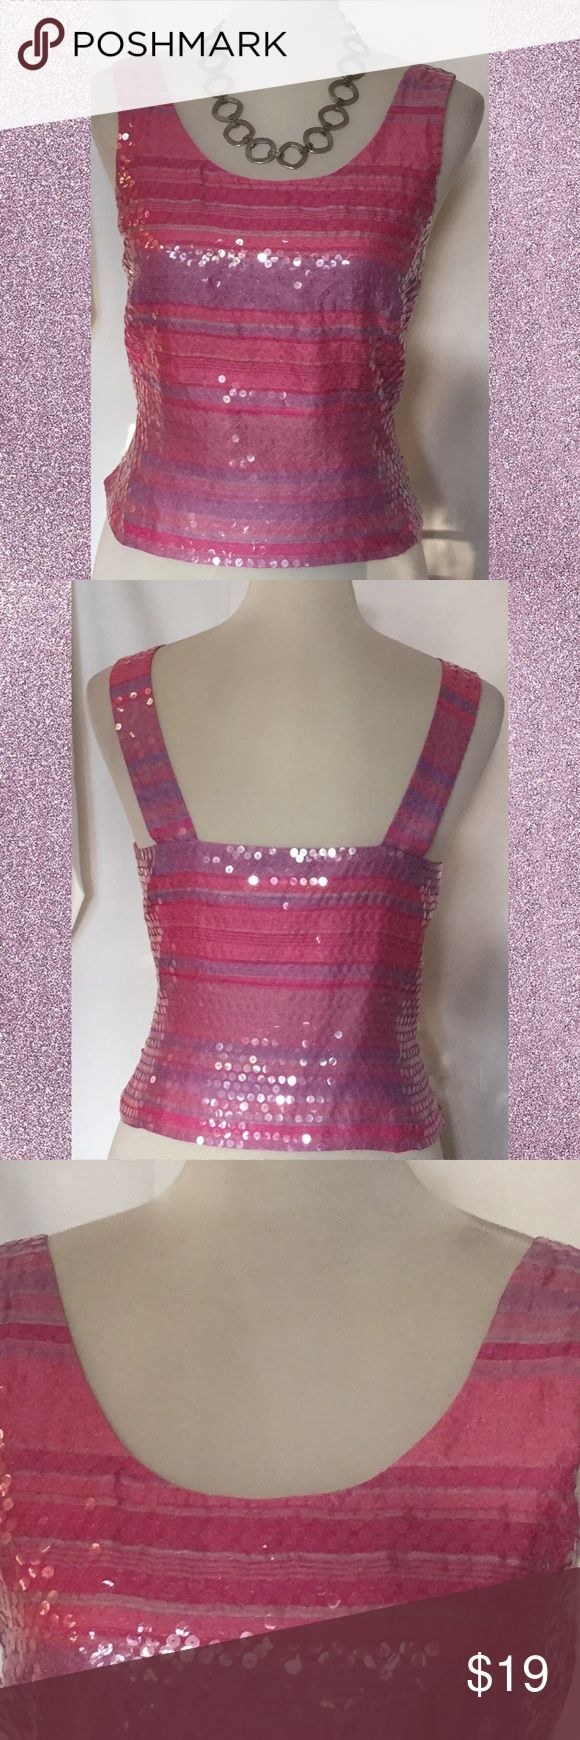 Girly, pink and clear sequin crop top, sz S Super cute crop top. Wear by itself or under sweater or blazer for a pop of color. Carlisle Tops Crop Tops